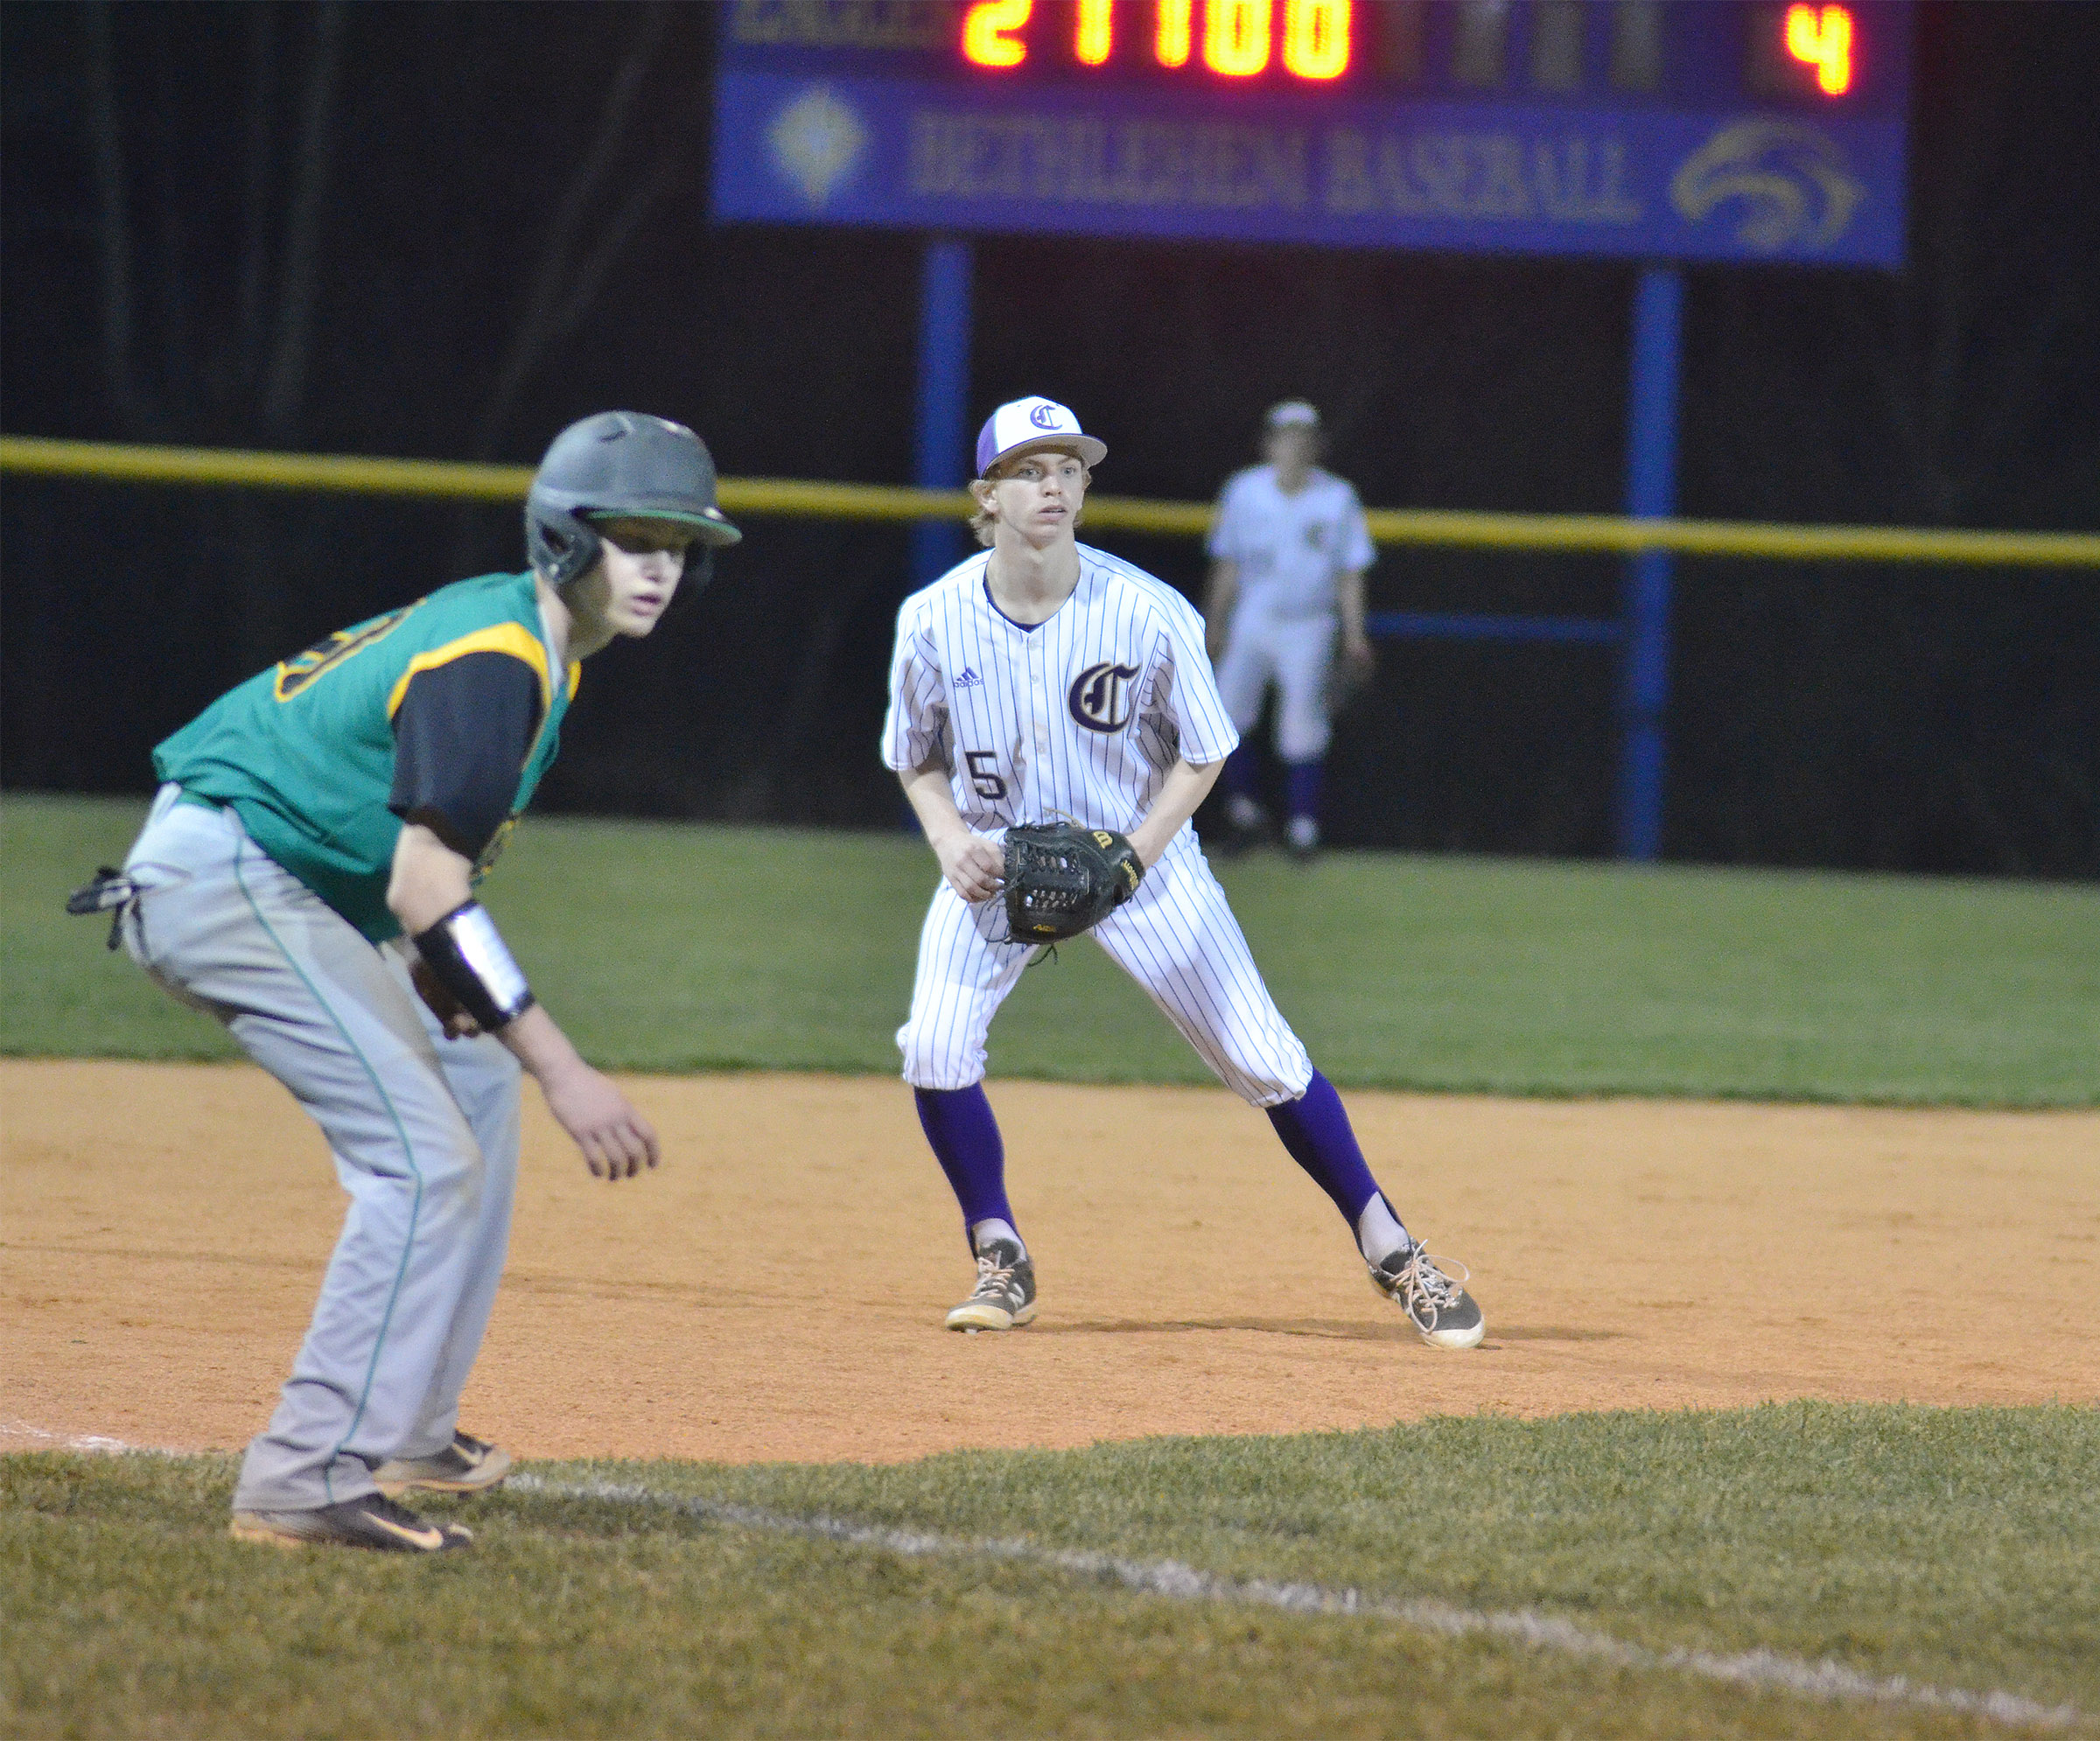 Campbellsville Middle School eighth-grader Arren Hash watches the runner on third.